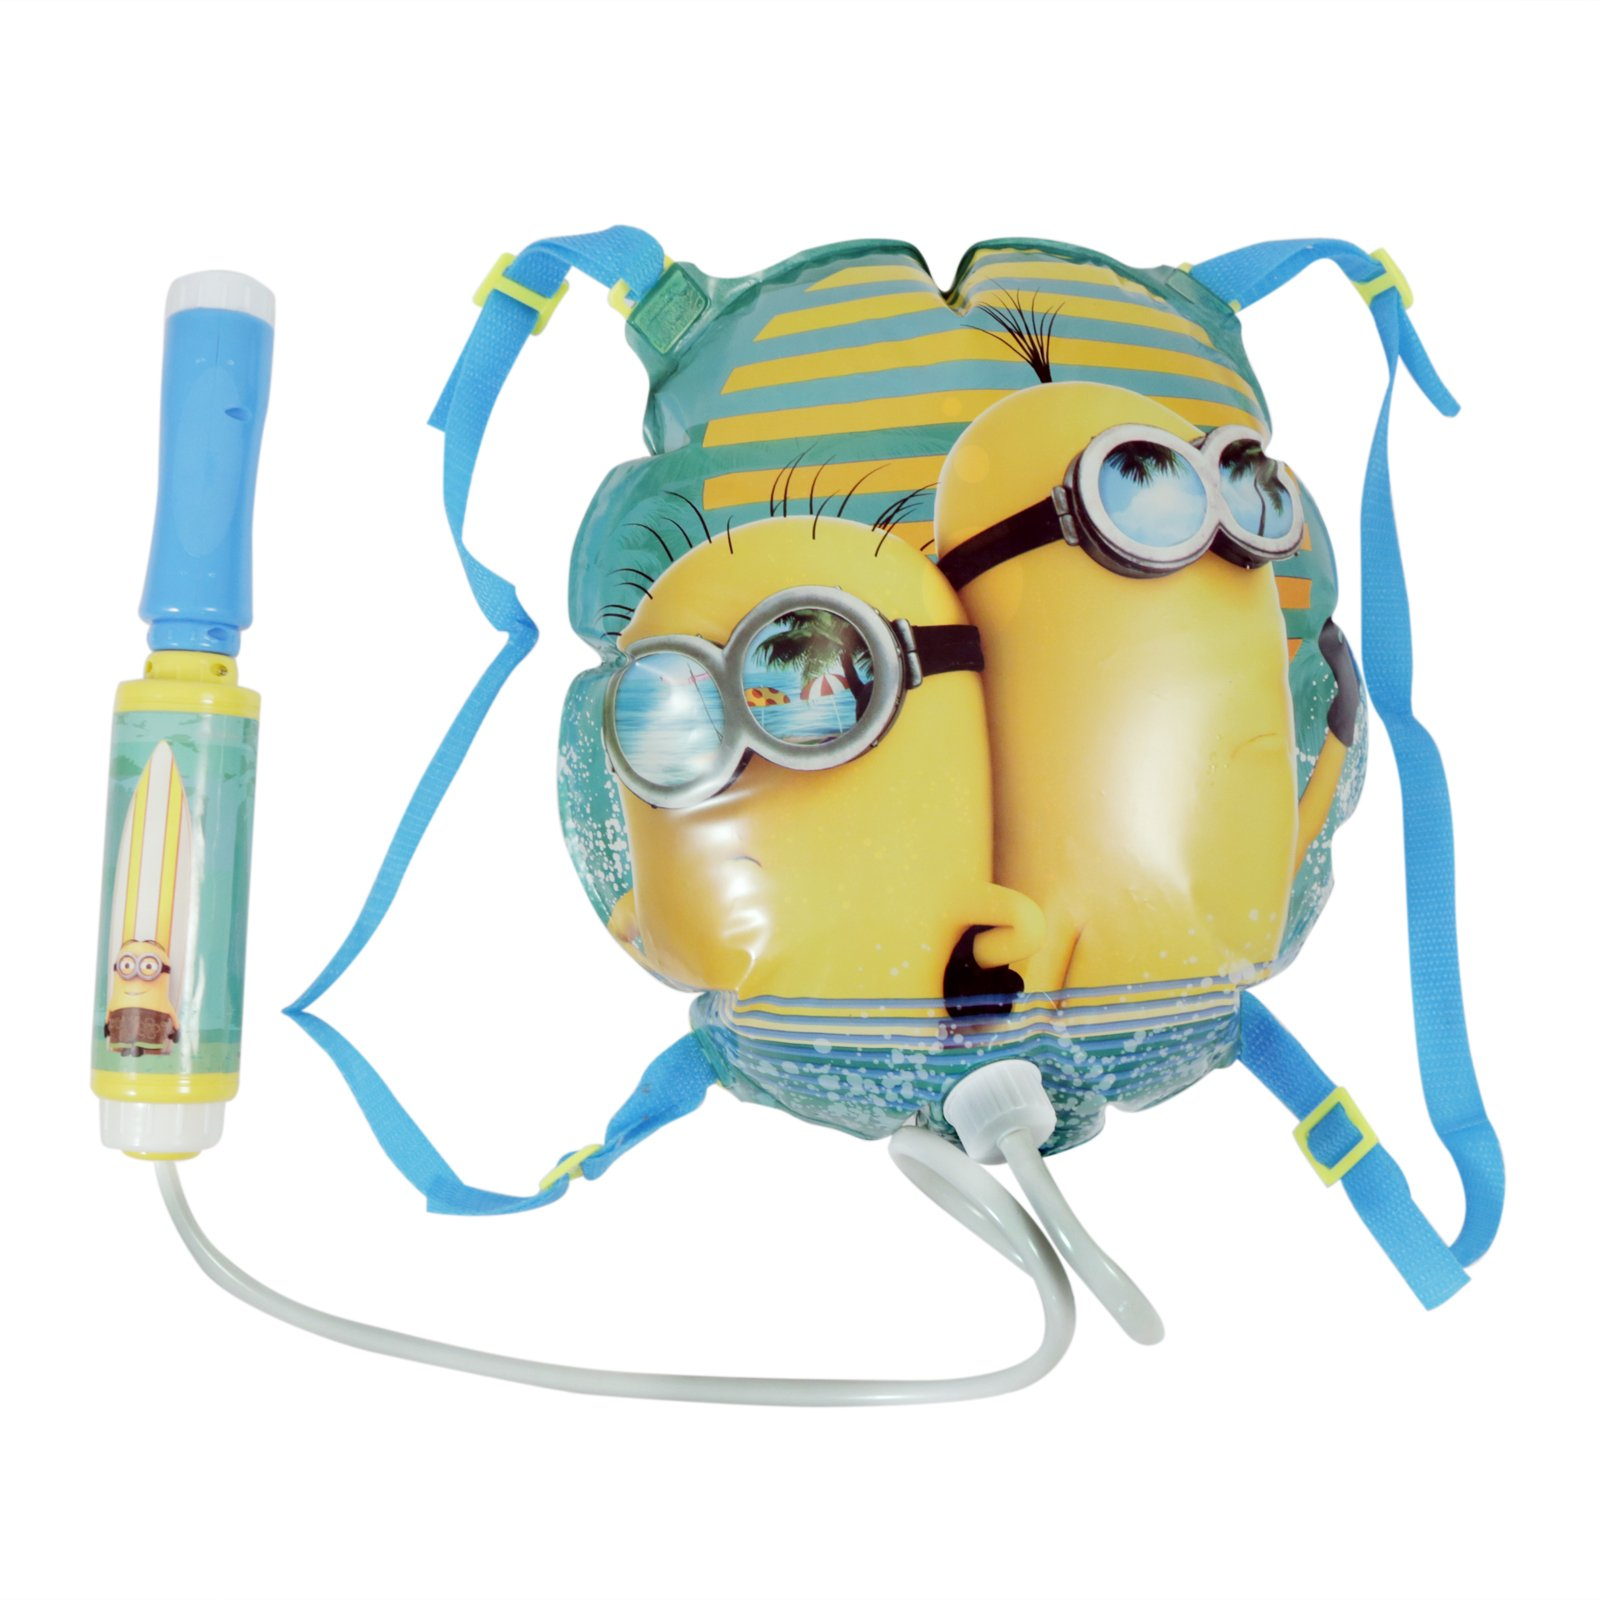 Despicable Me Minion Water Blaster Backpack Fun in the Sun